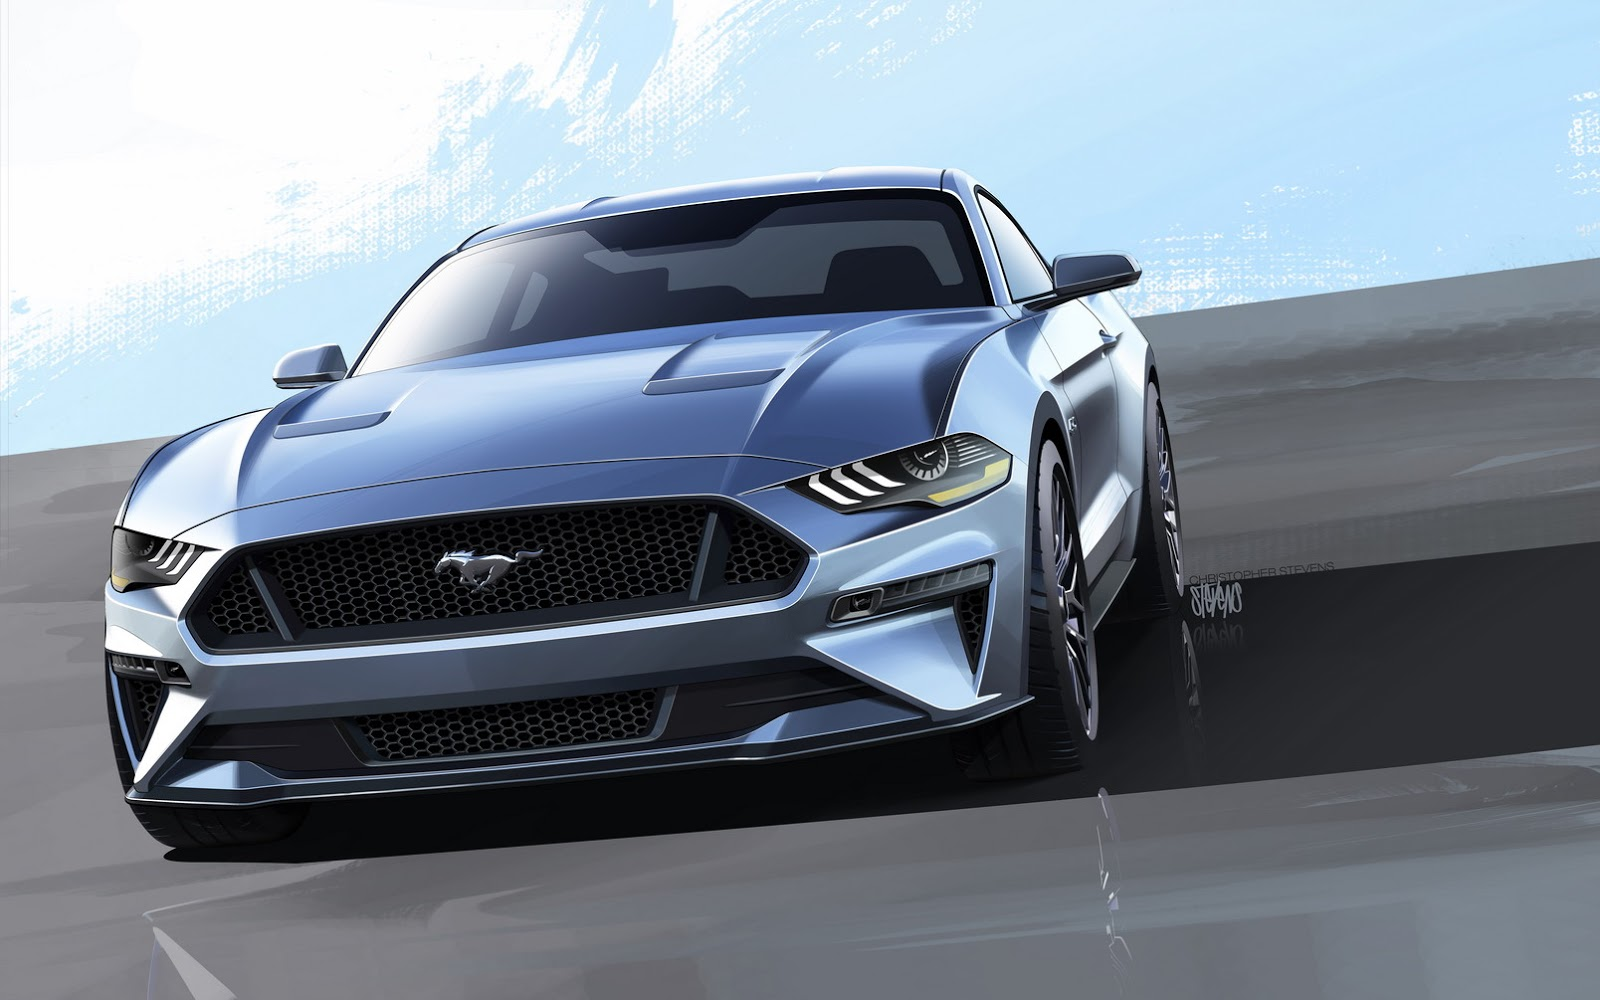 2018_Ford_Mustang_facelift_14